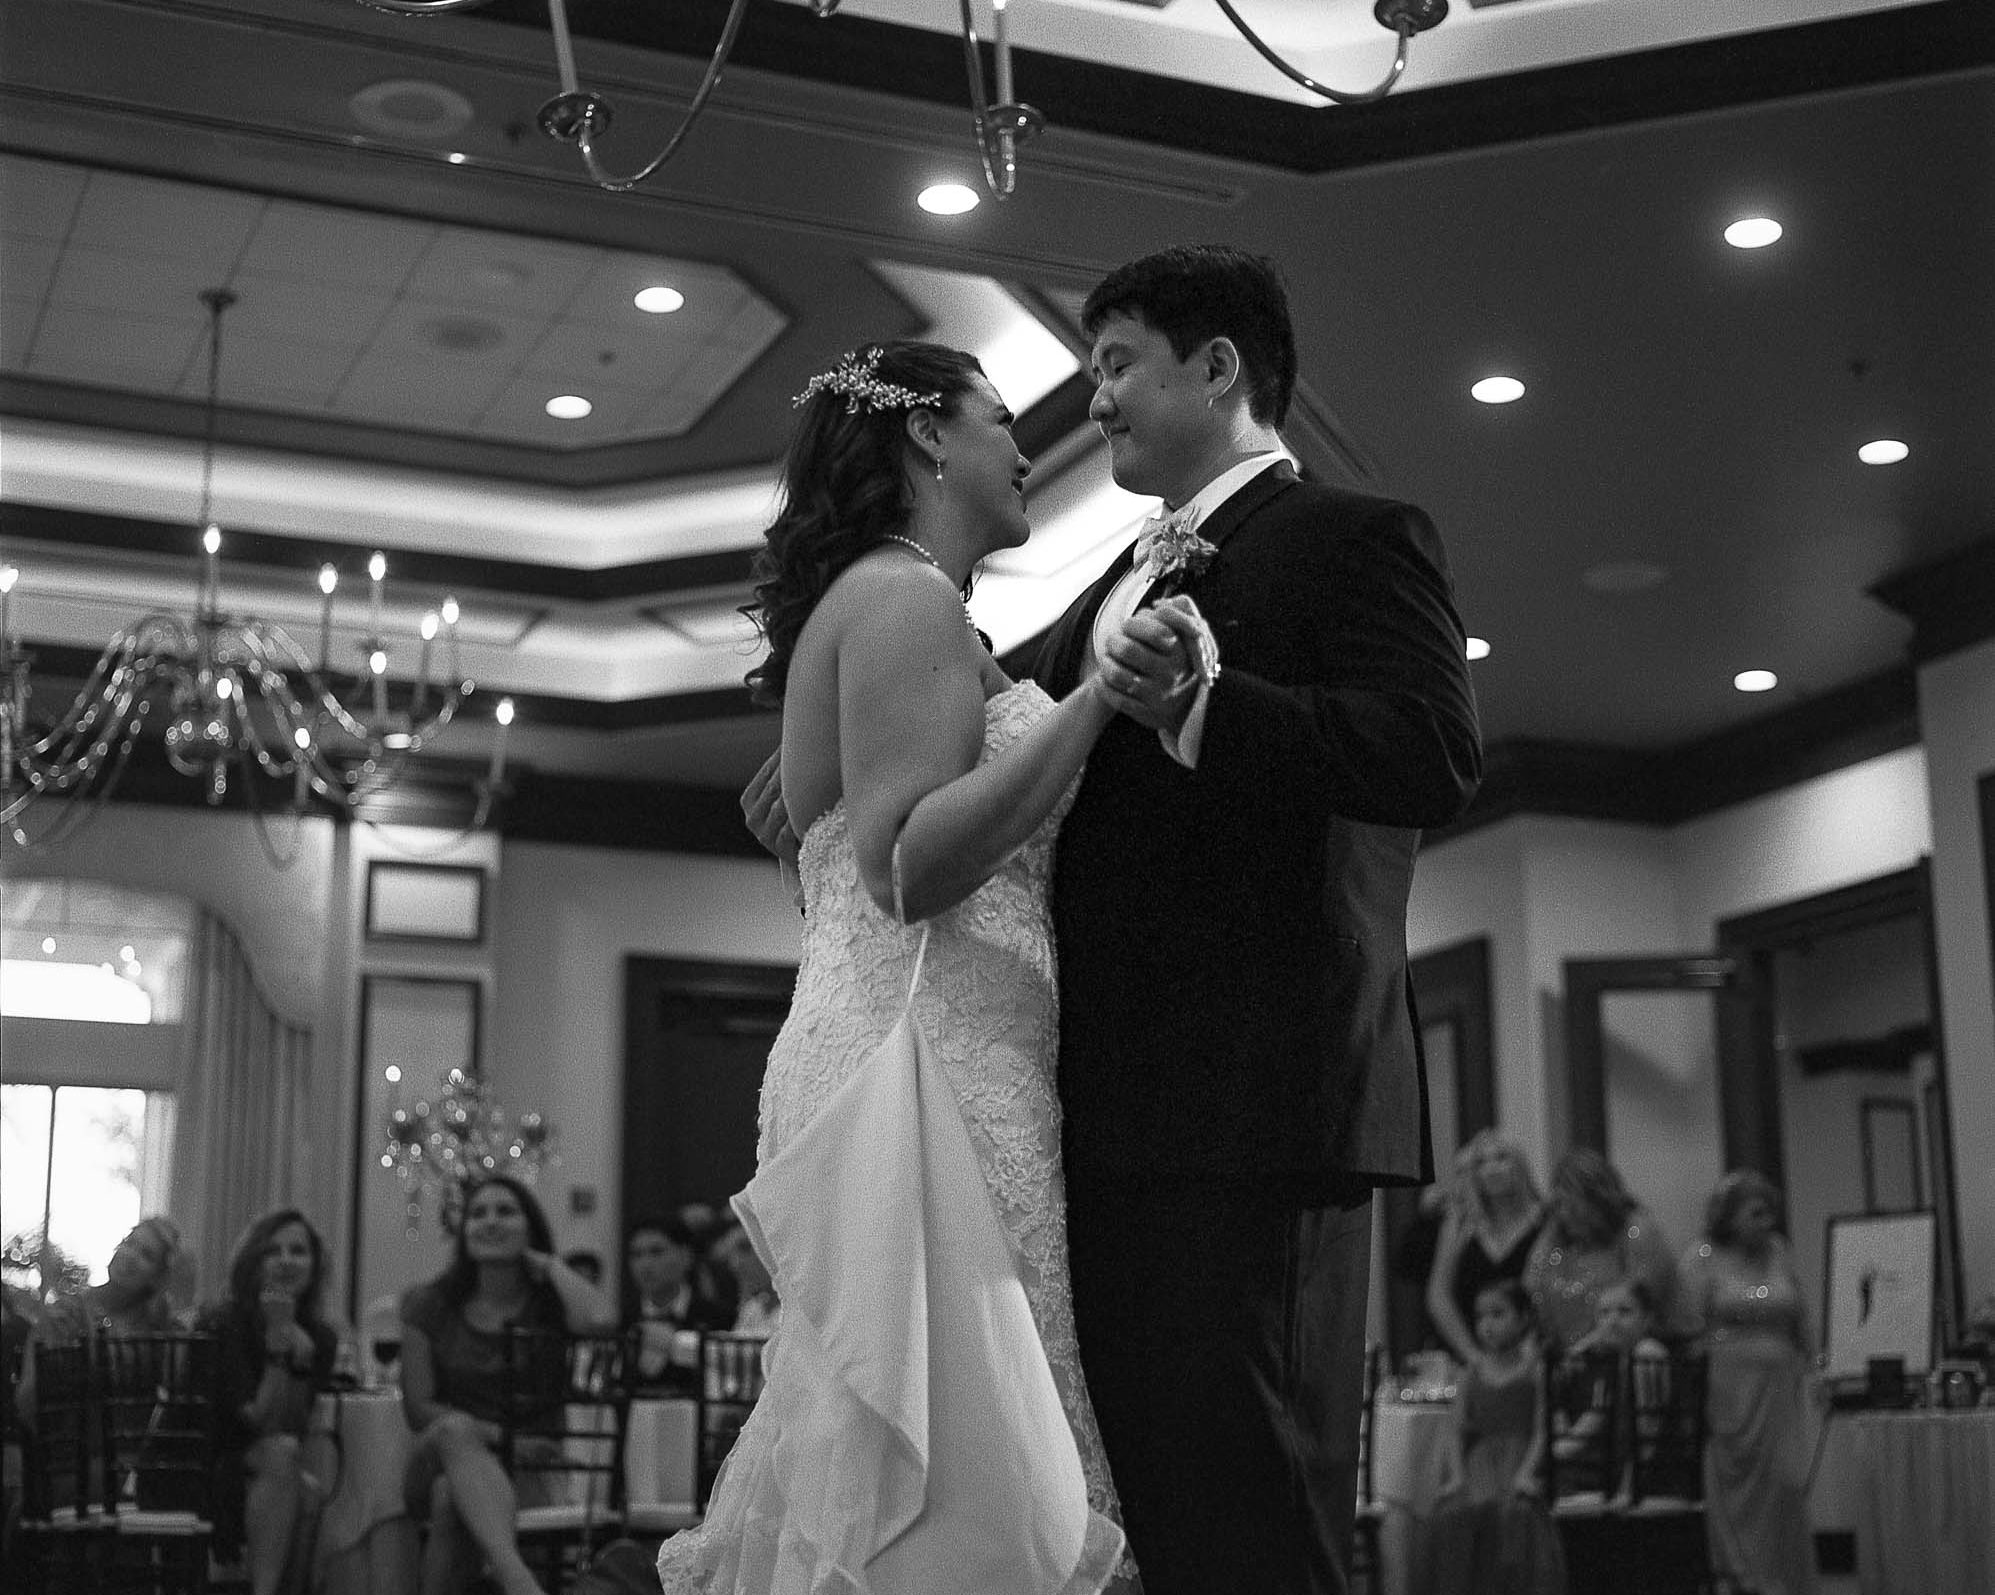 Bride and groom gazing into each others eyes during first dance at wedding reception